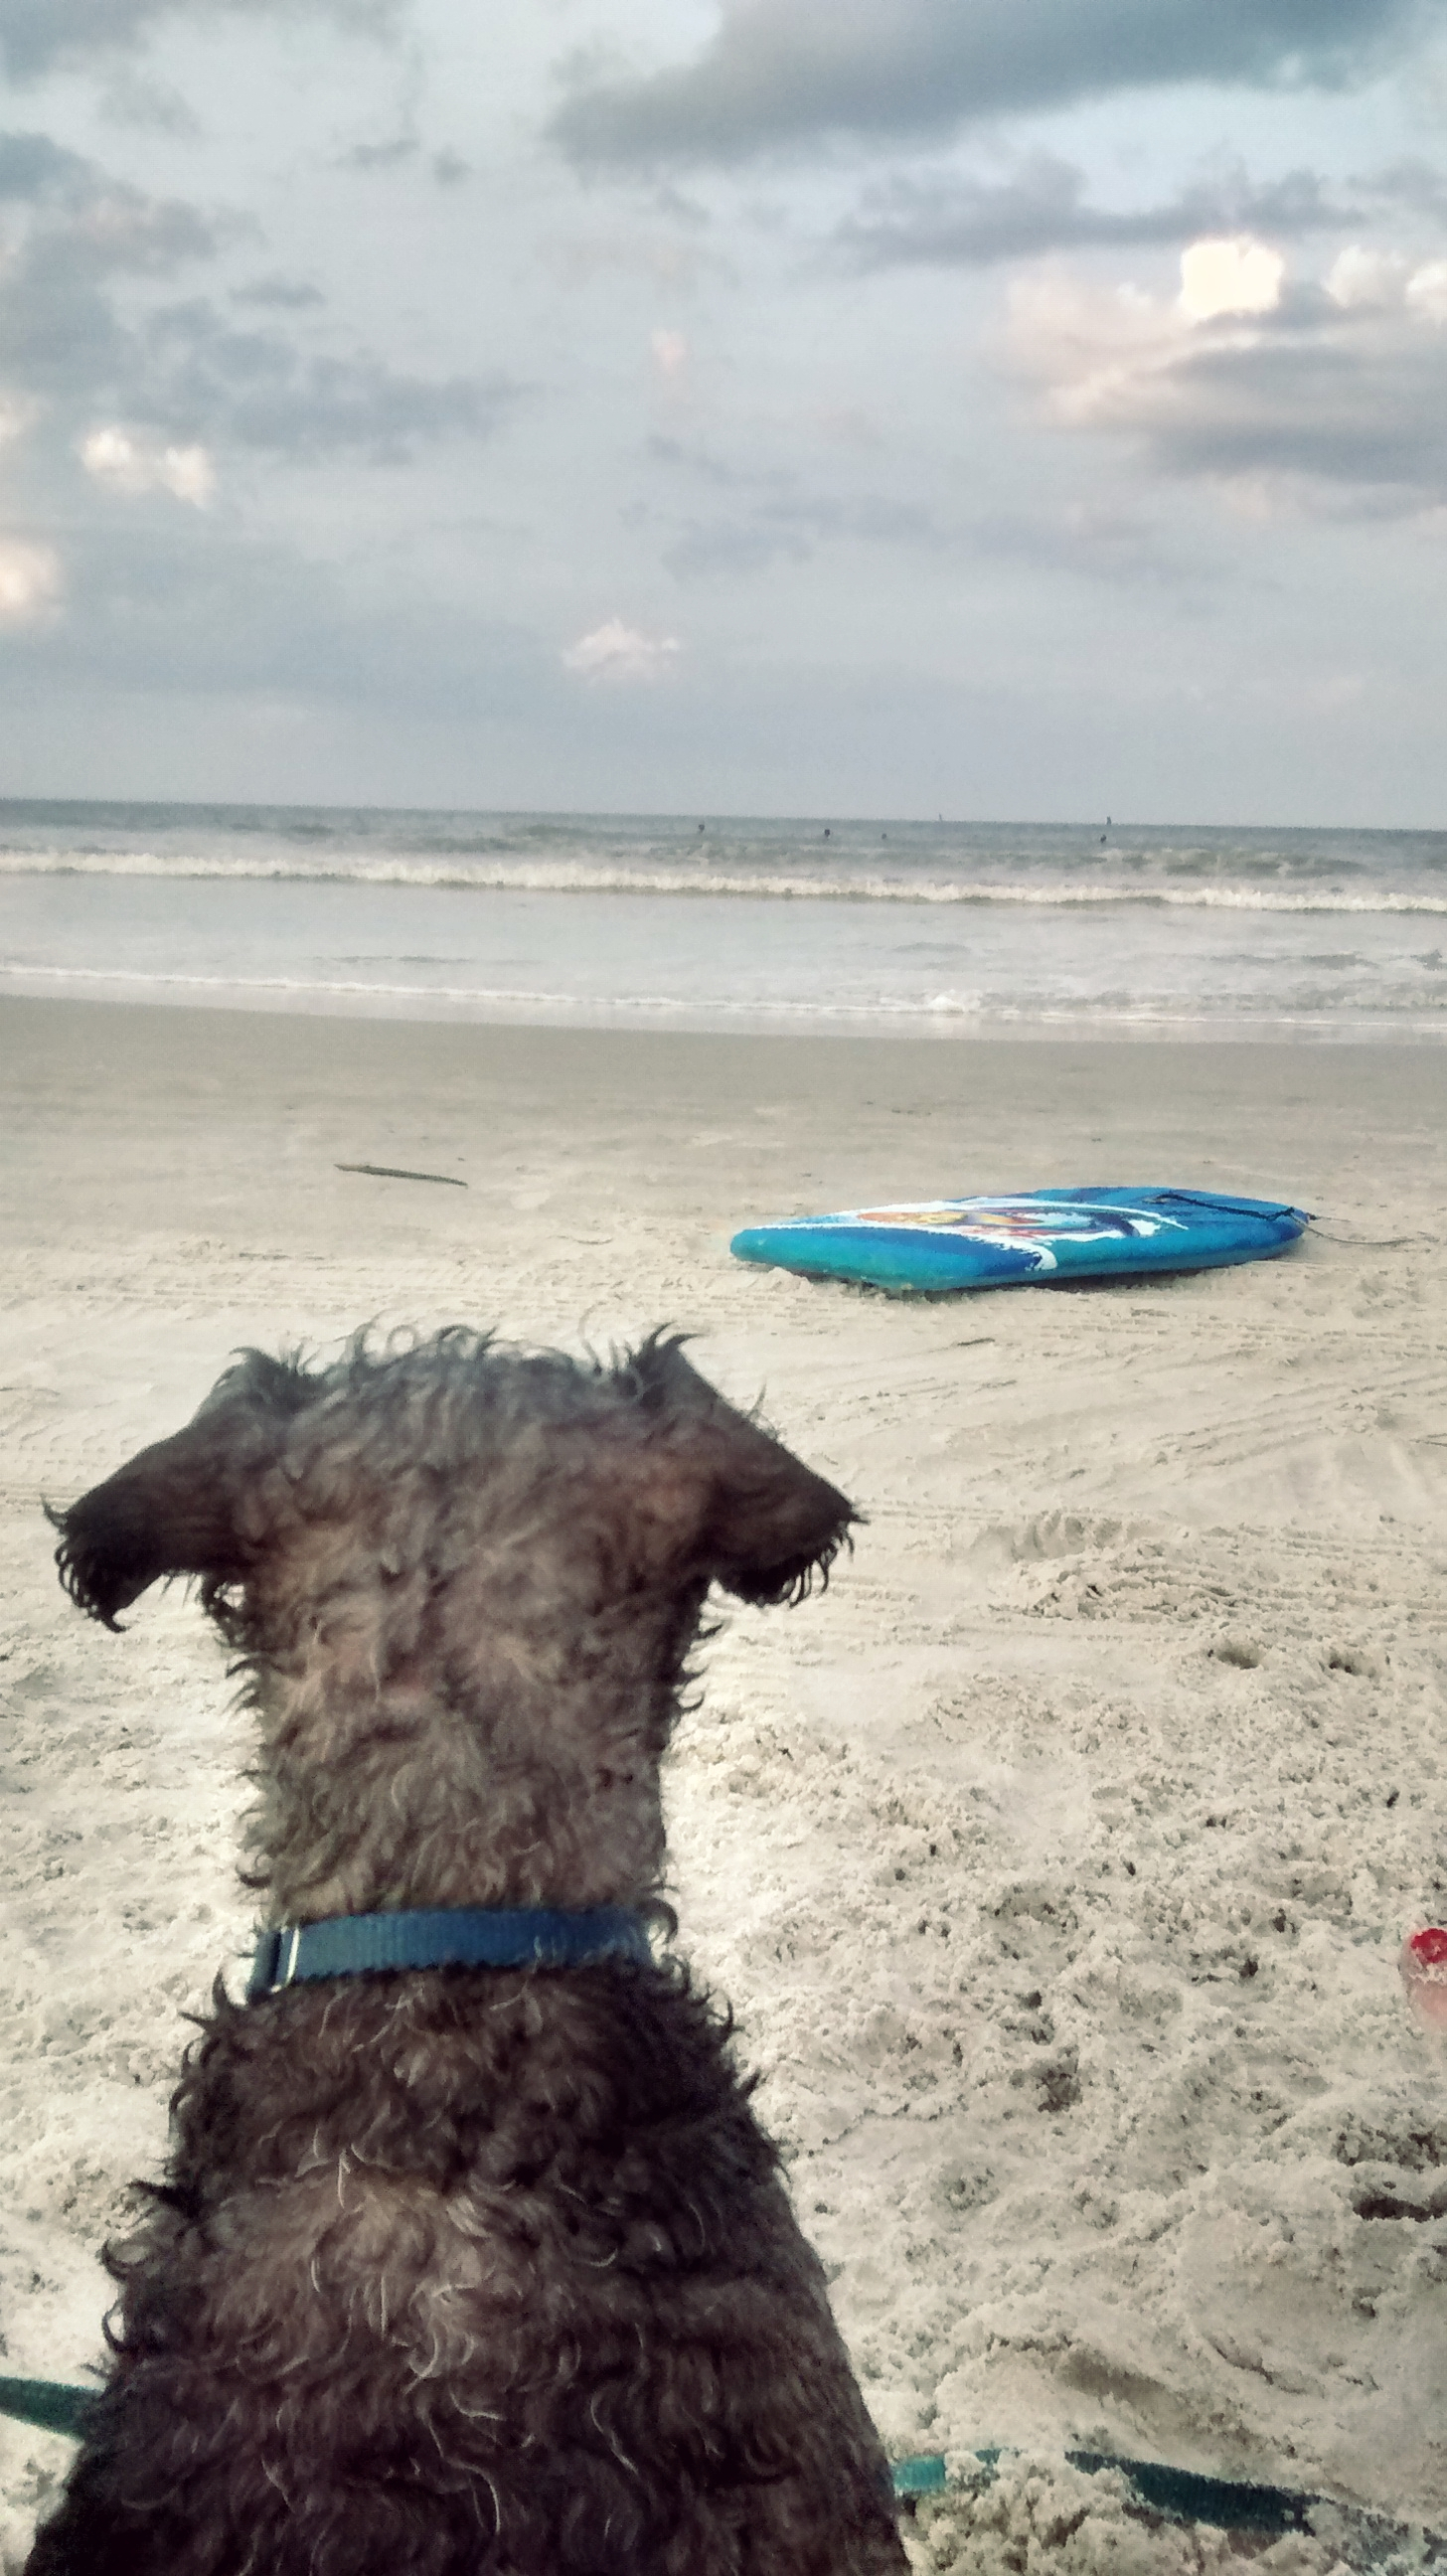 Even T-dog needs some epic contemplation time about the purpose of his life after a dip in the ocean...